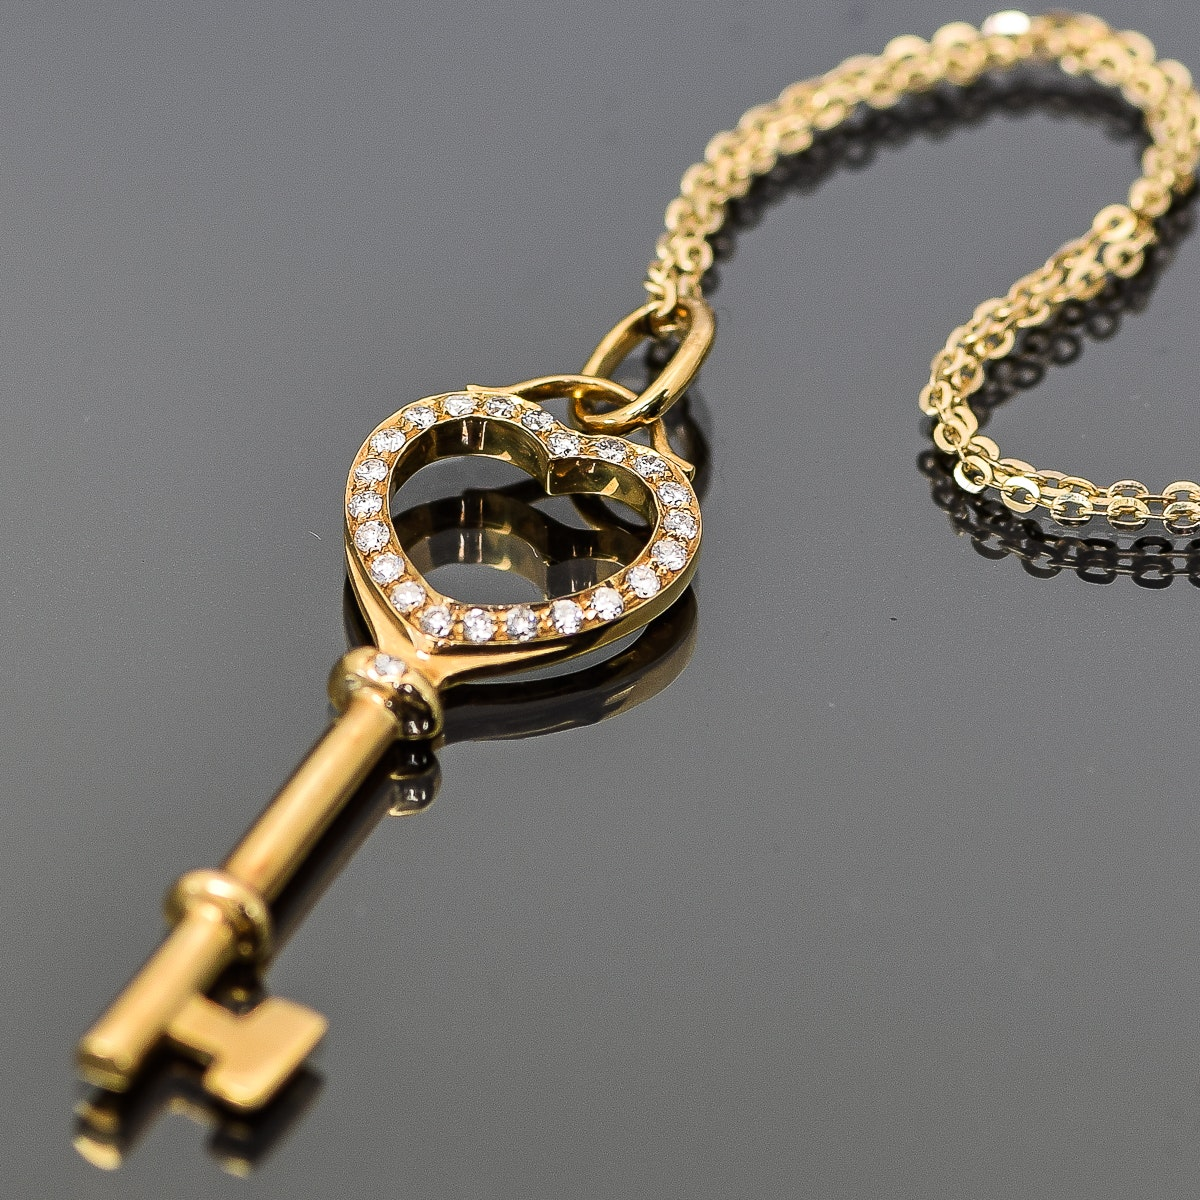 18K Yellow Gold and Diamond Turn Key Pendant Necklace